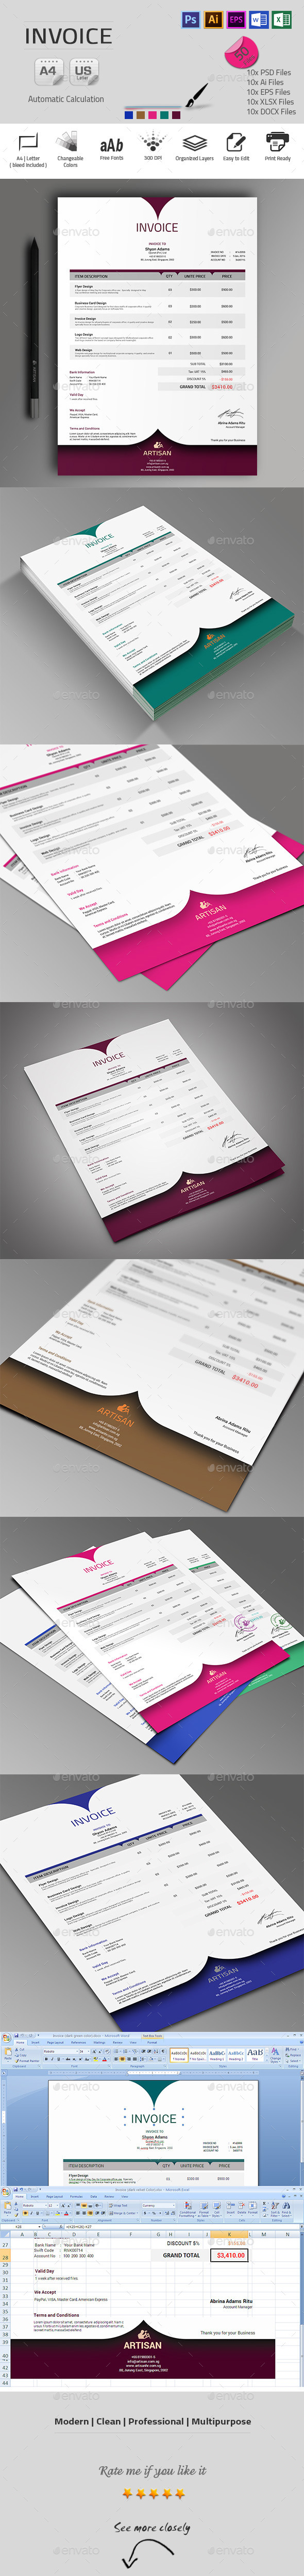 GraphicRiver Invoice 9939350